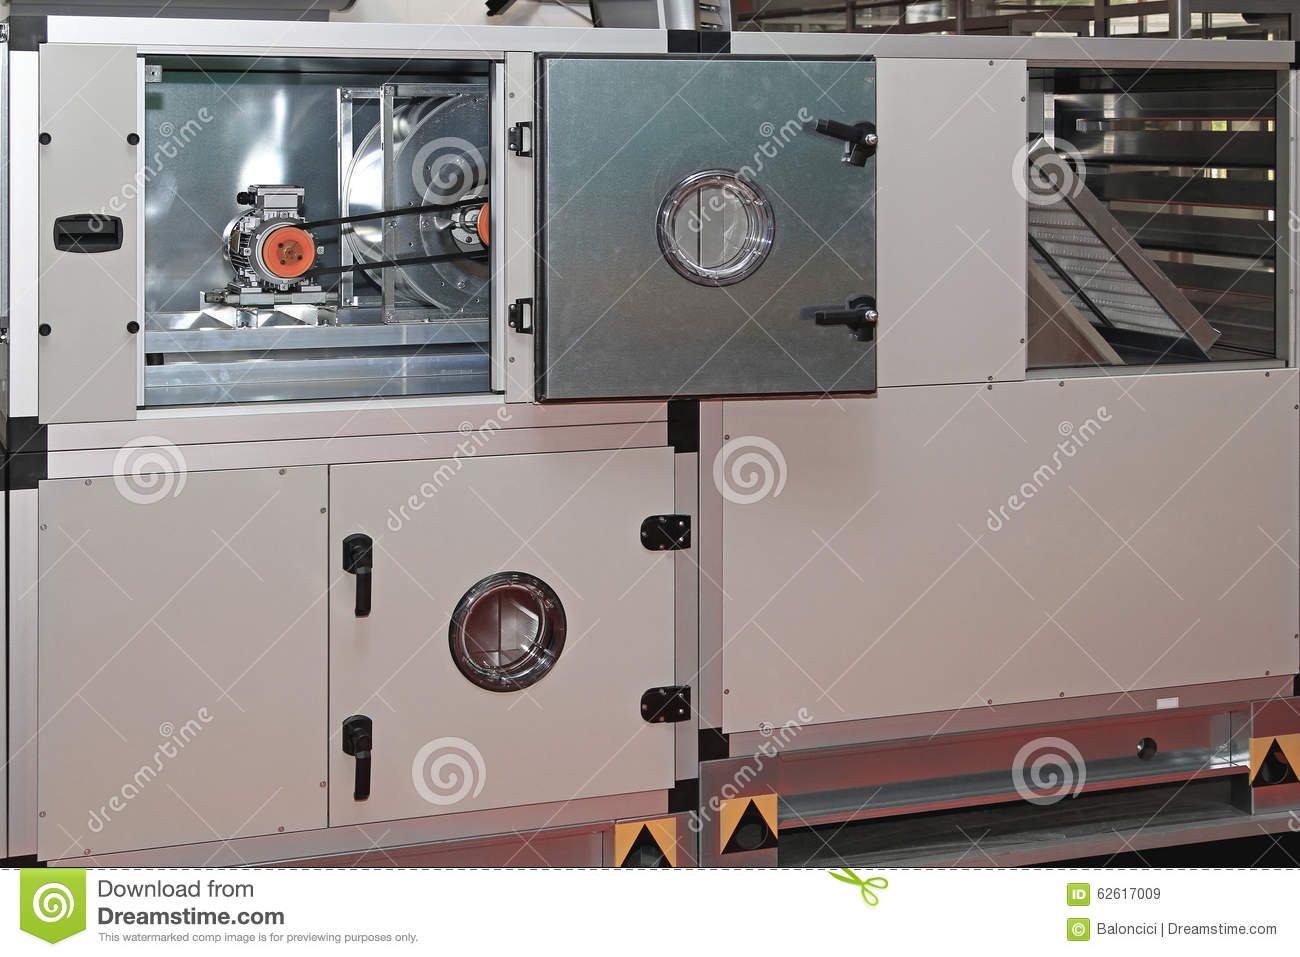 Central Ventilation System : Air handling unit stock photo image